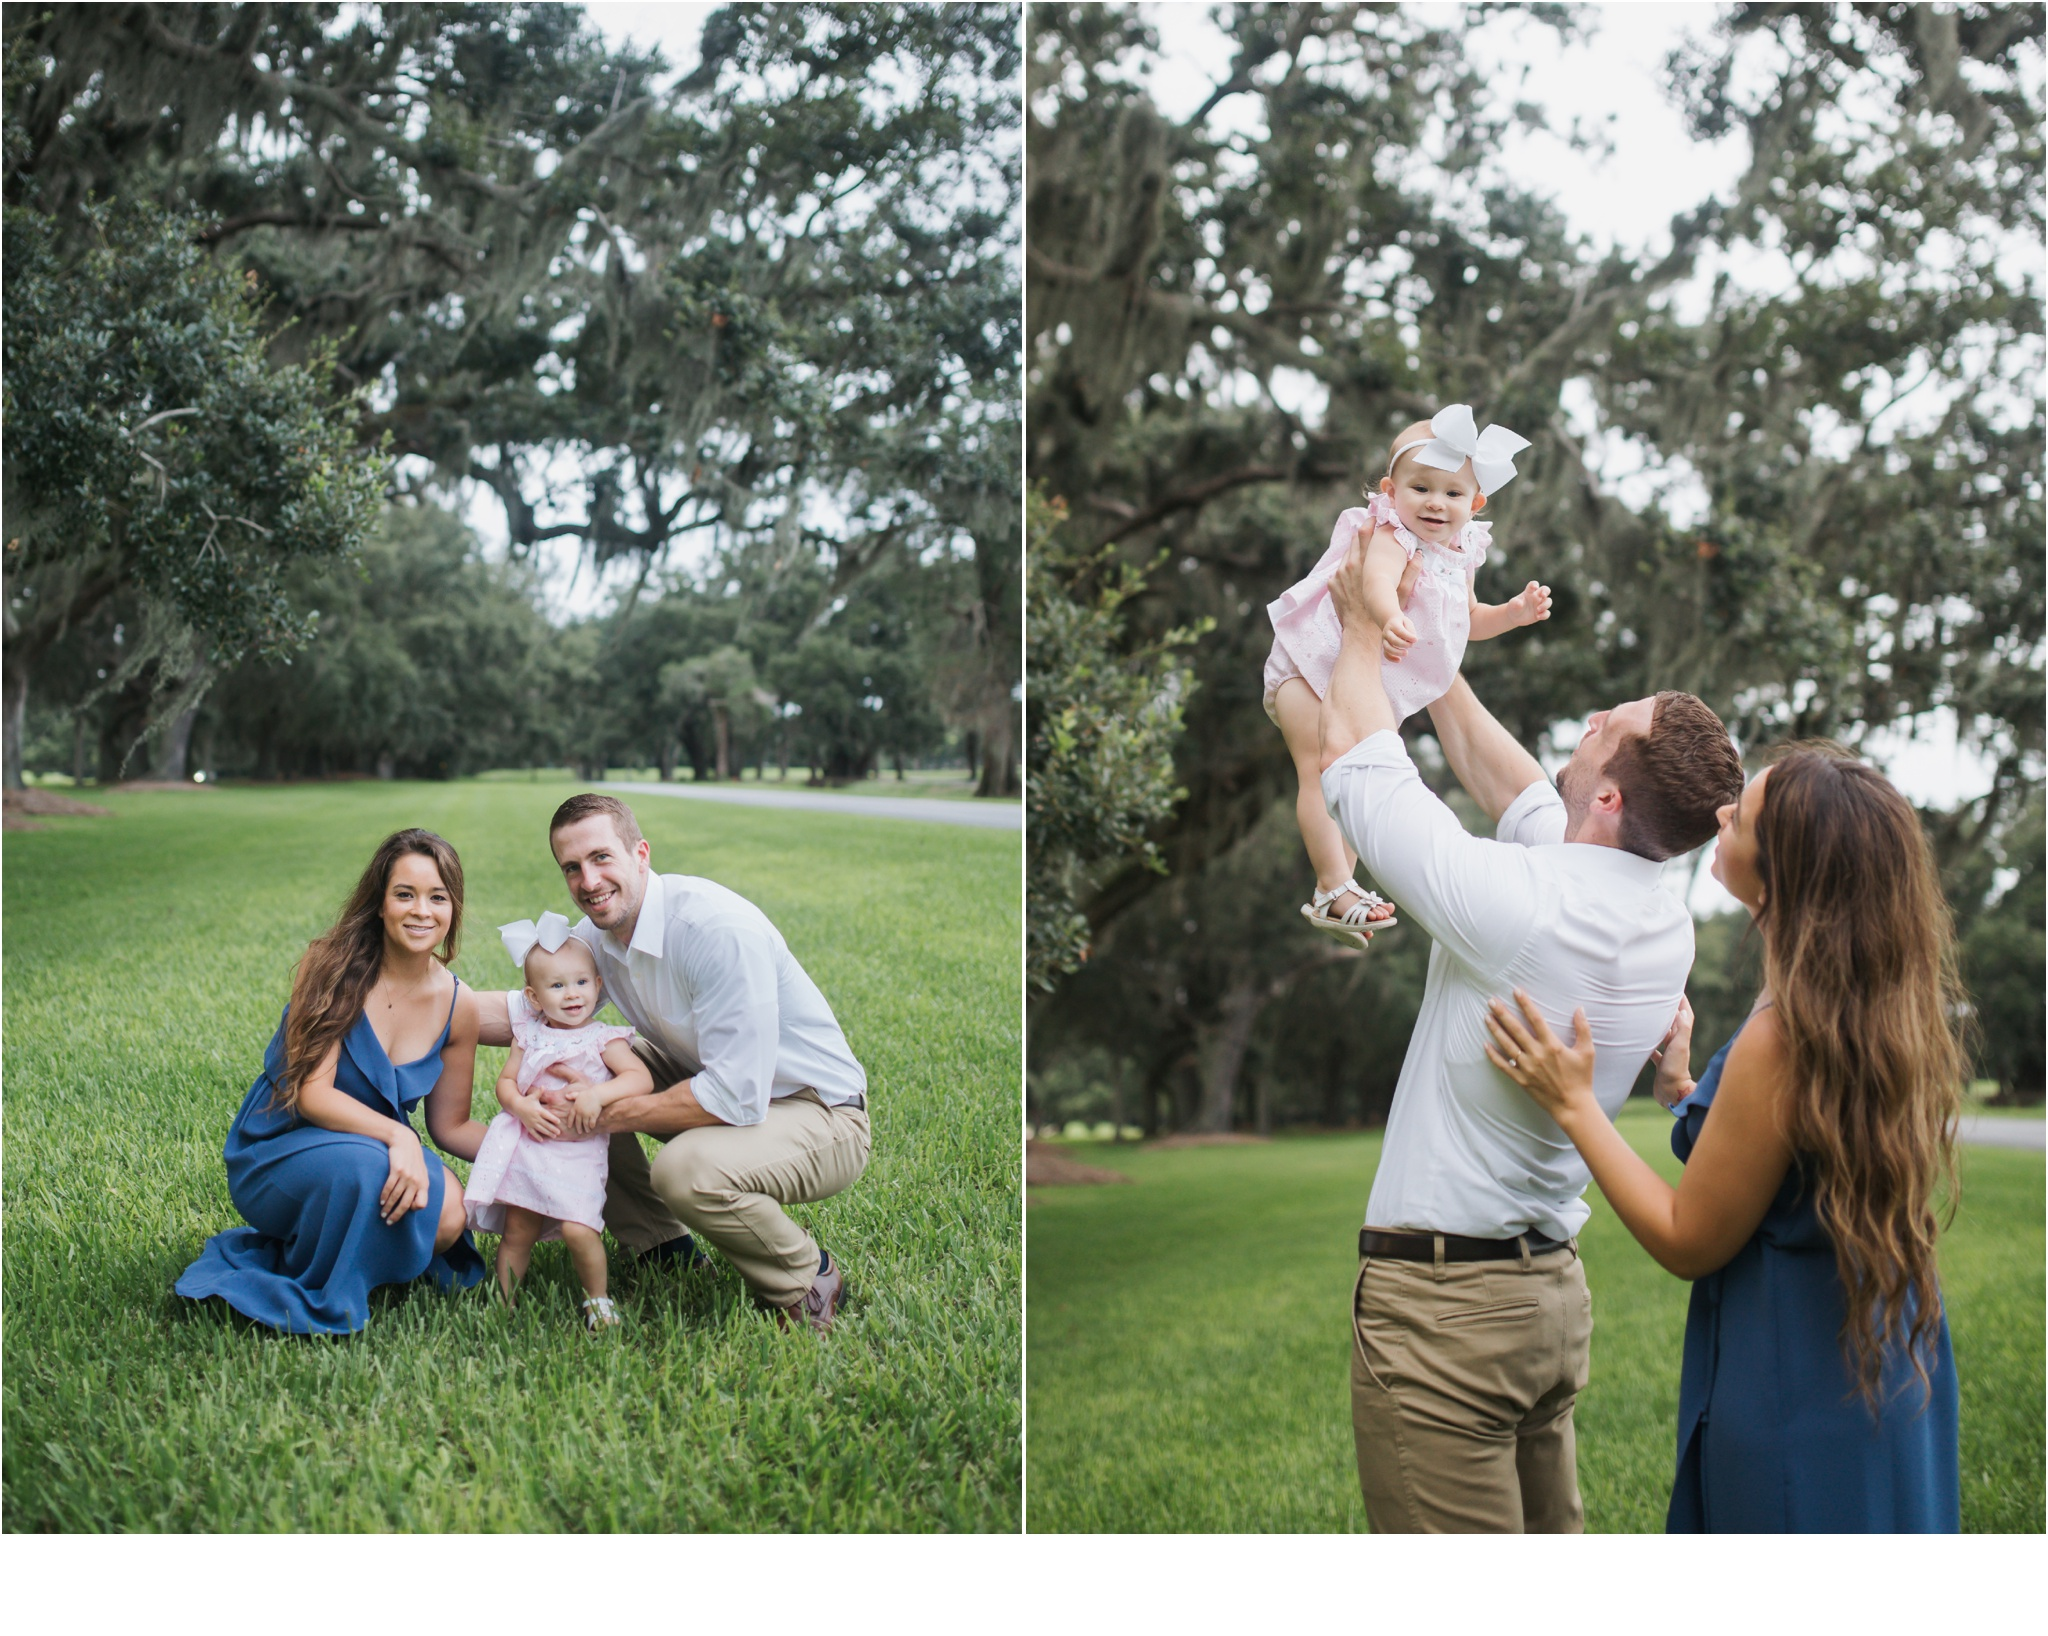 Rainey_Gregg_Photography_St._Simons_Island_Georgia_California_Wedding_Portrait_Photography_1447.jpg